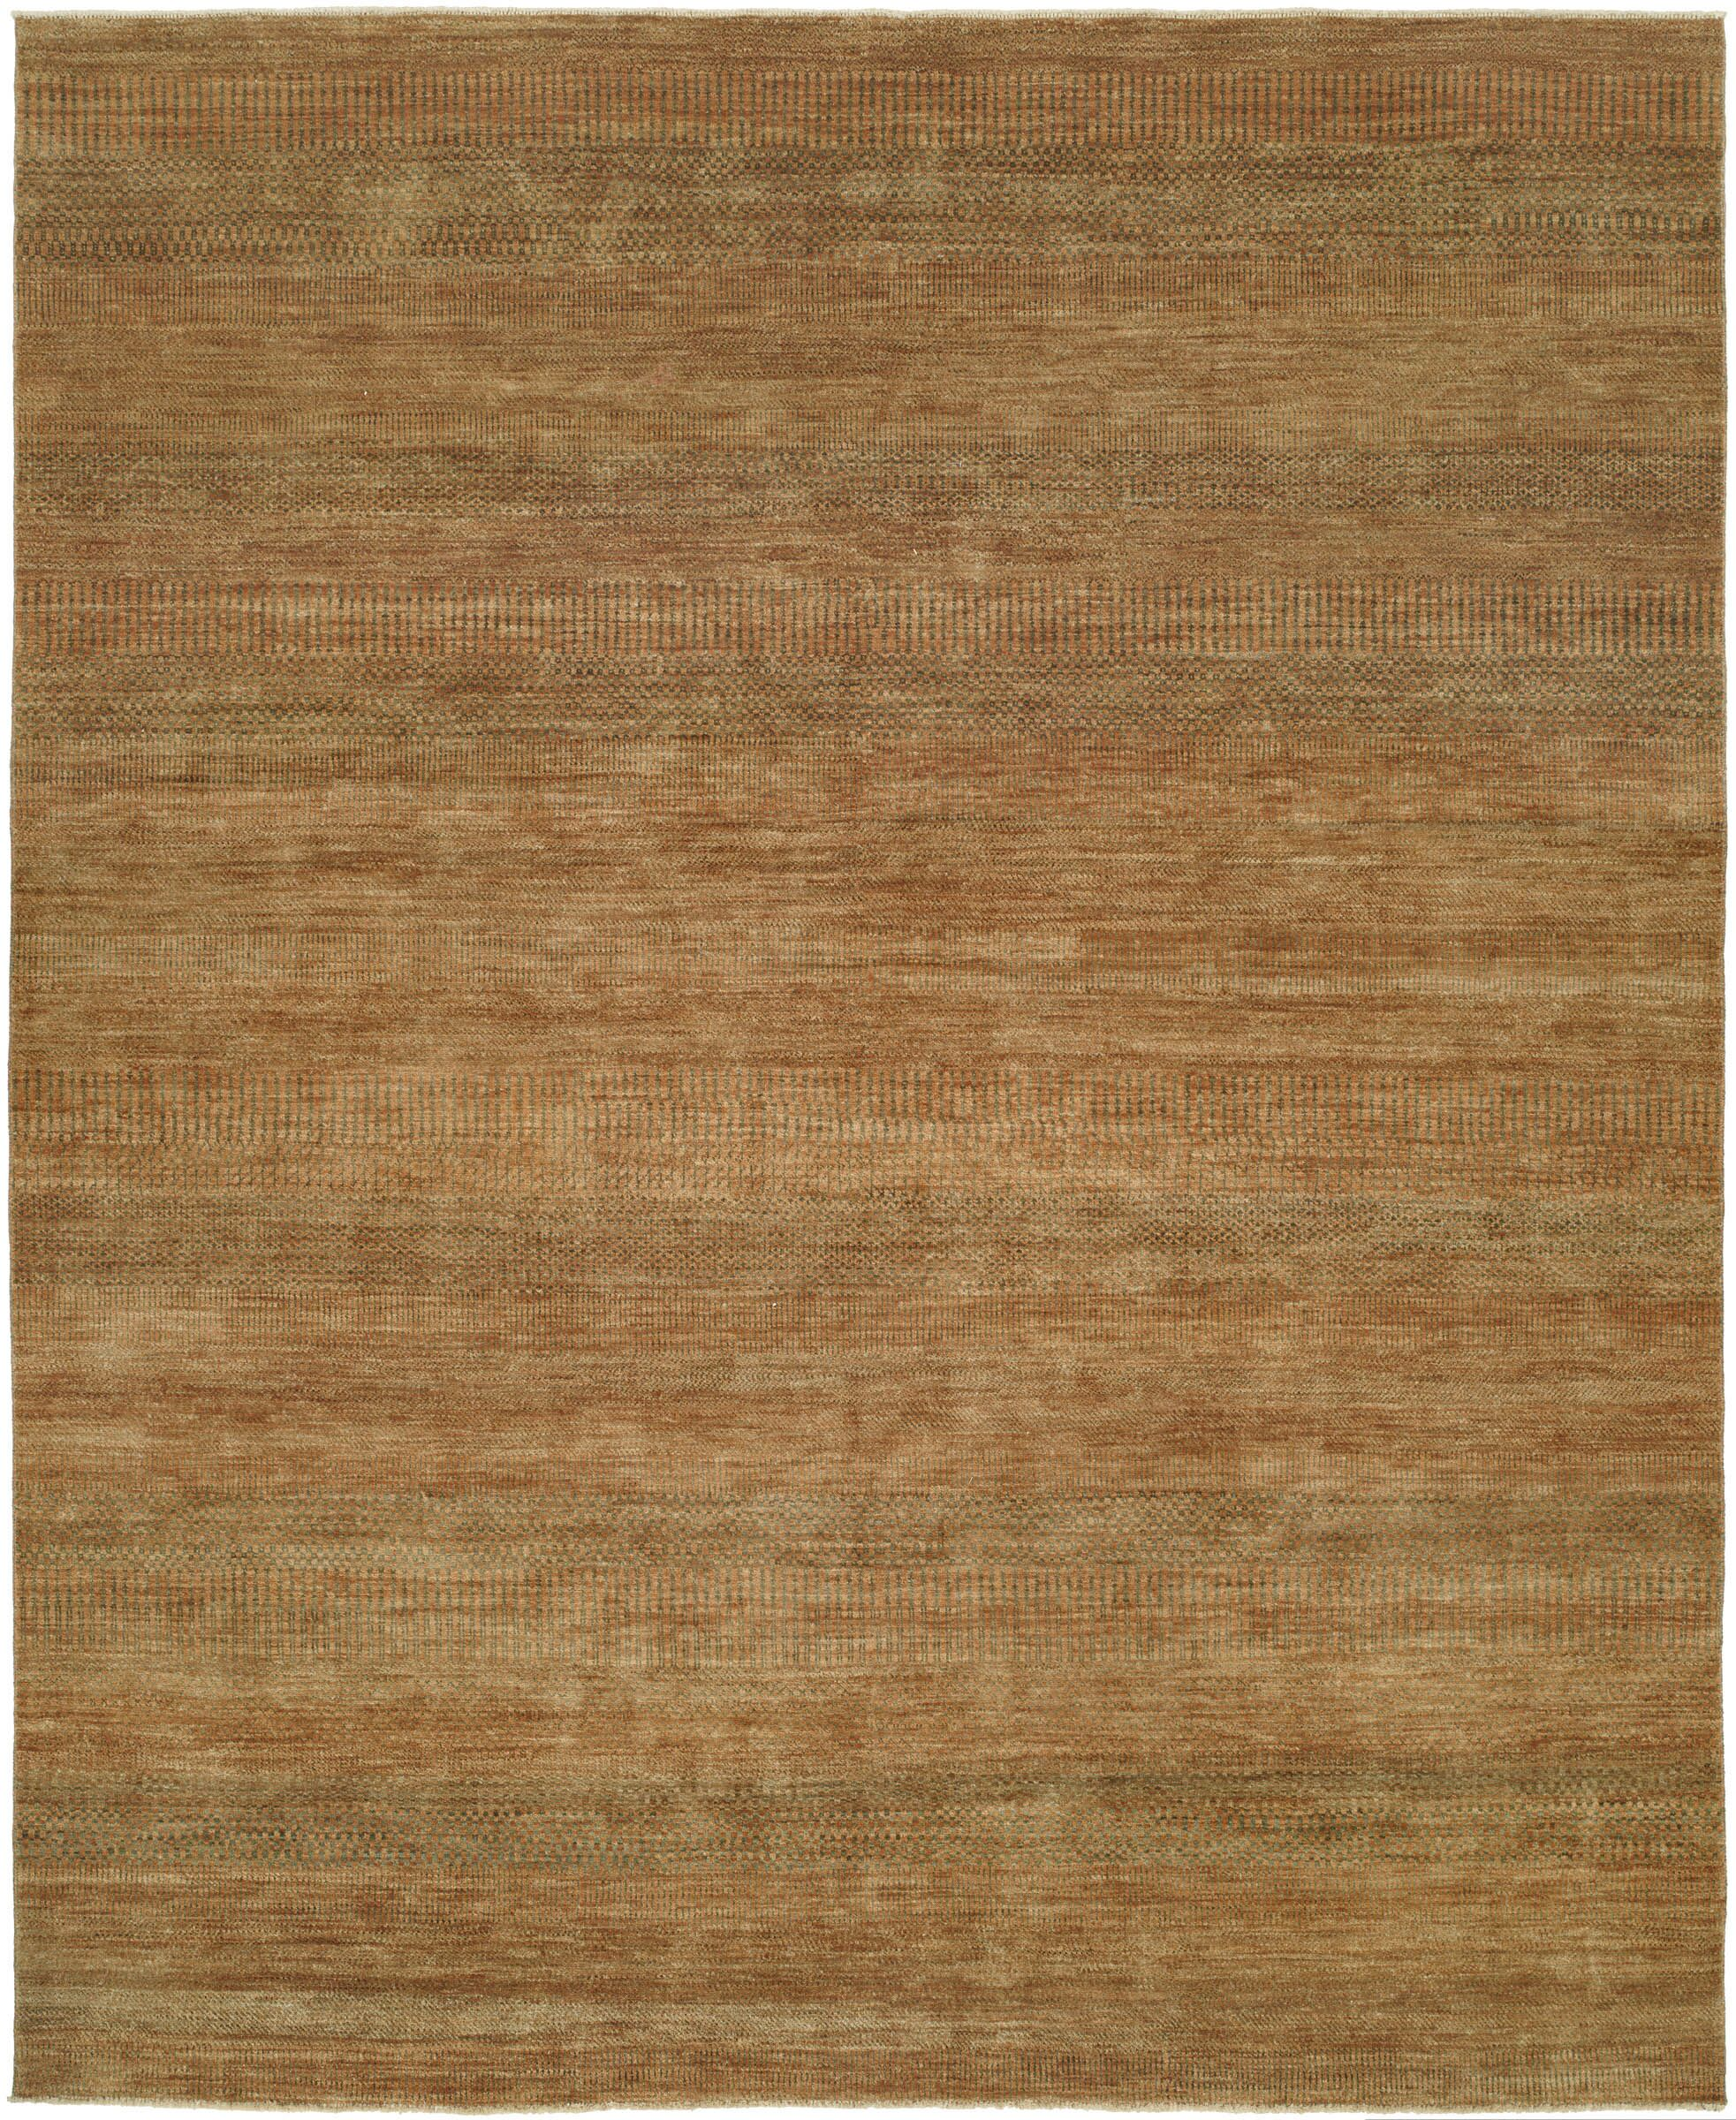 Illusions Gold/Green Area Rug Rug Size: 8' x 10'